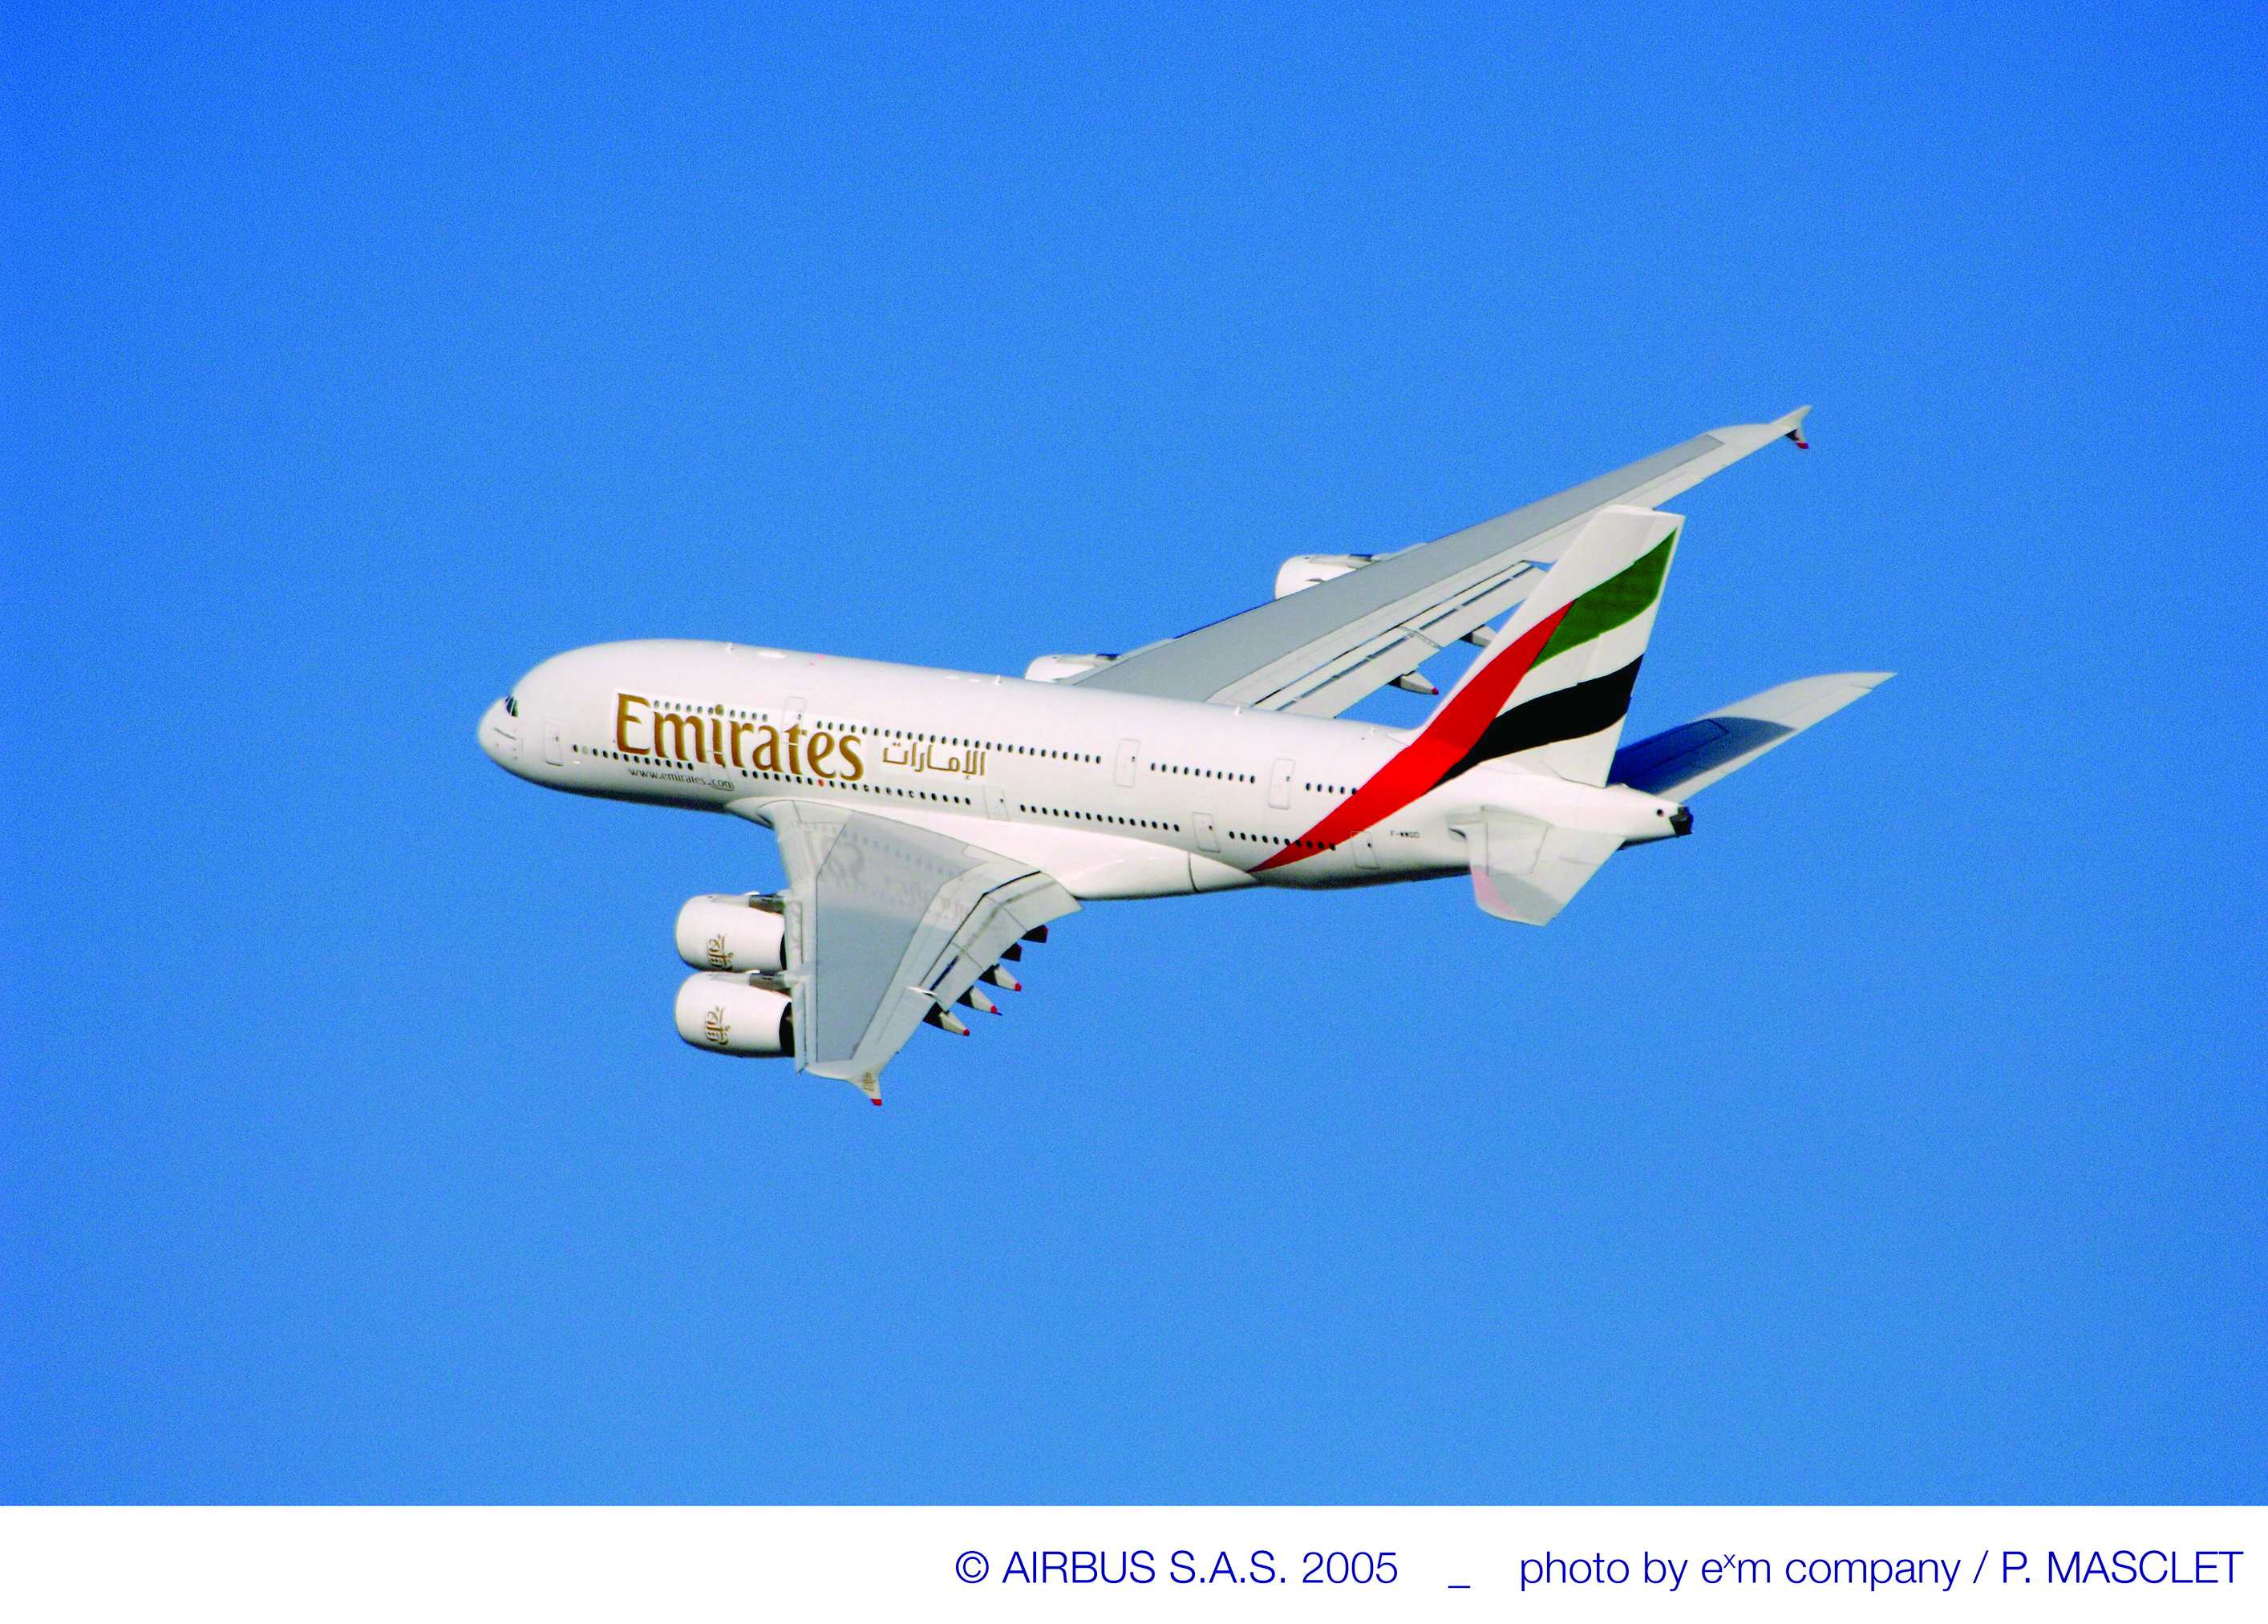 Emirates' new LA flight takes aim at fruit and vegetable exports